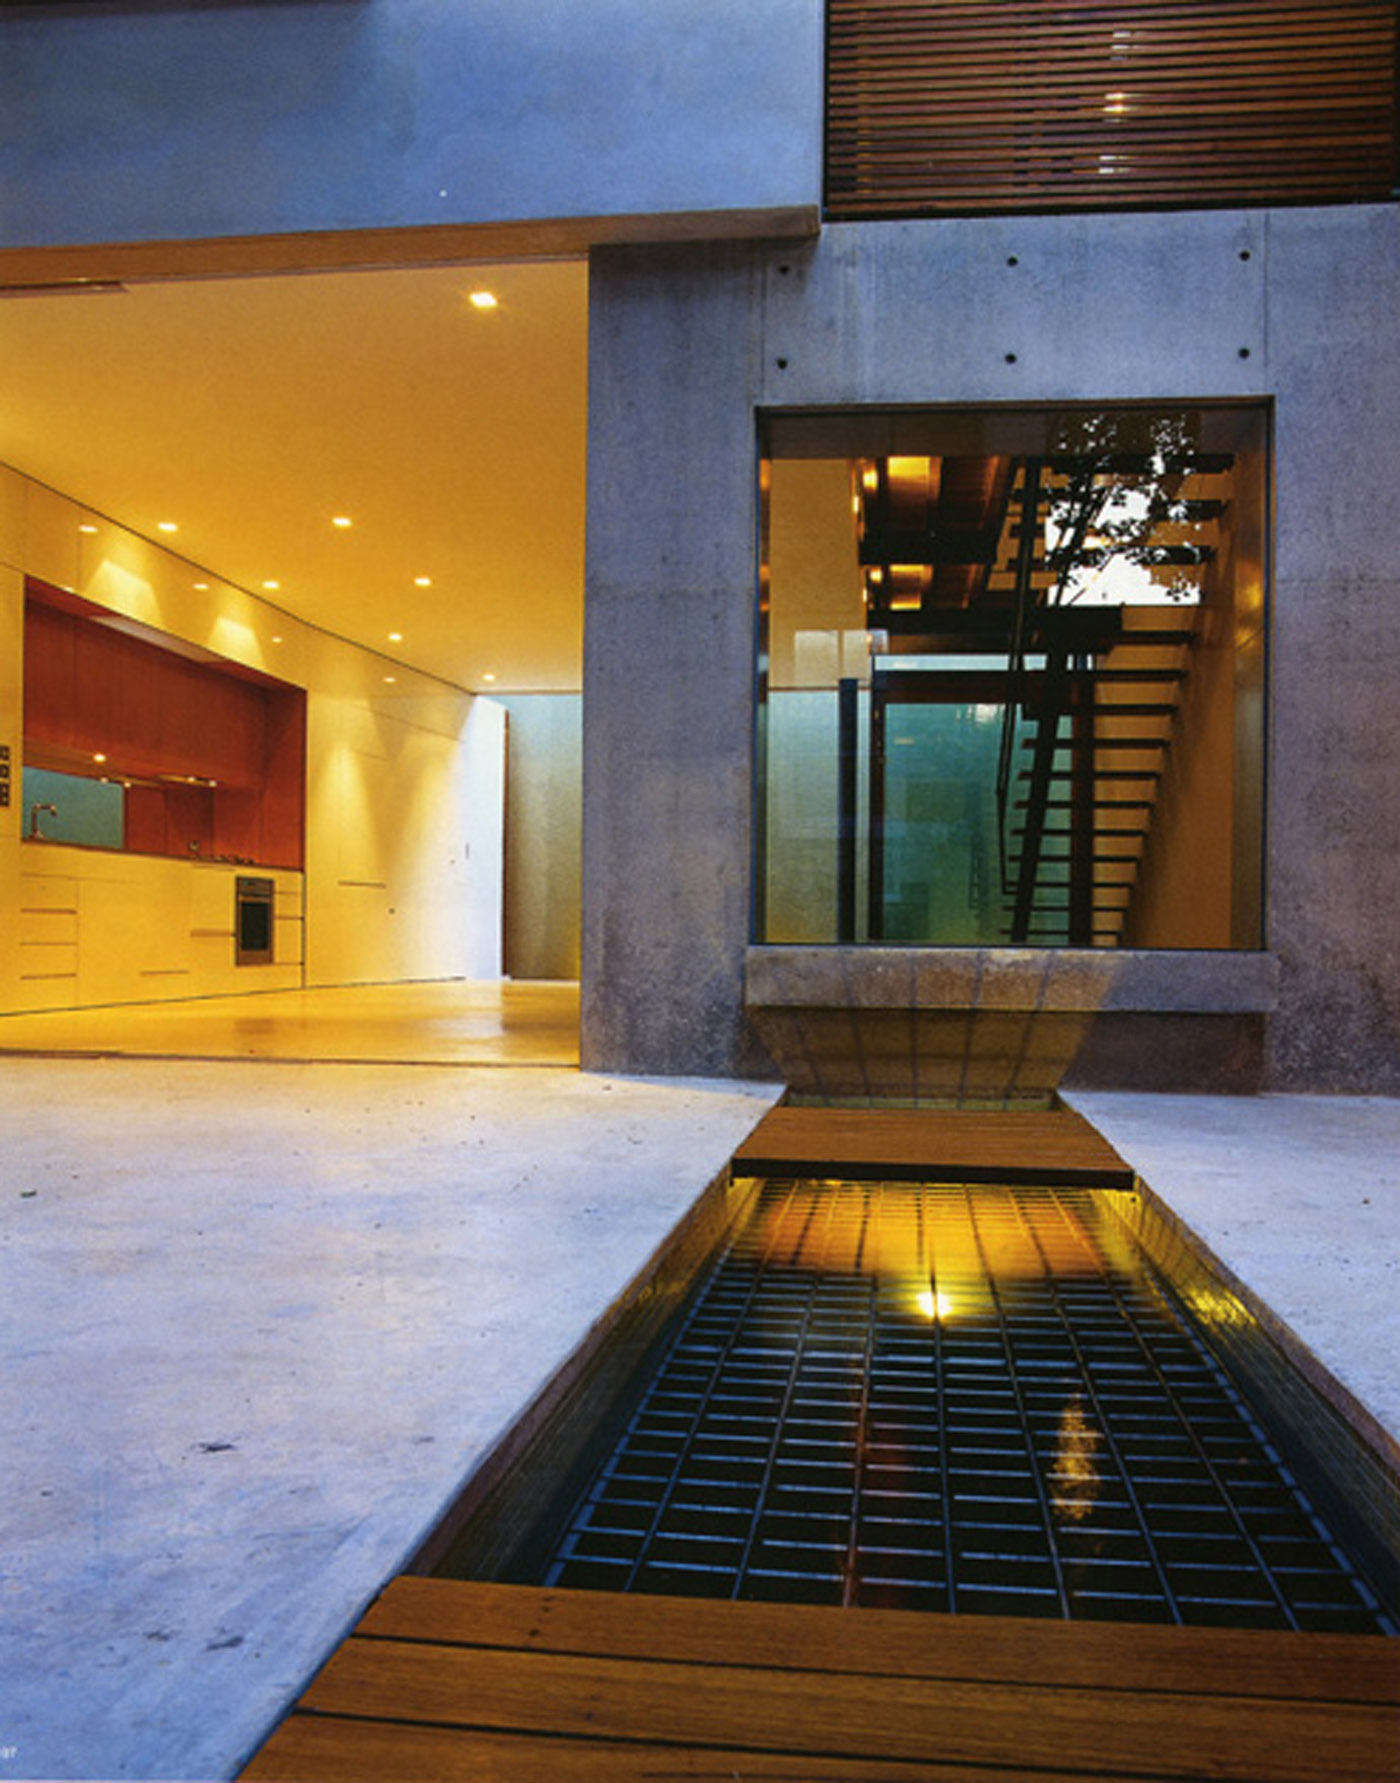 Substation House by award winning residential architecture firm Sam Crawford Architects. View from the ambient concrete courtyard into the open plan kitchen